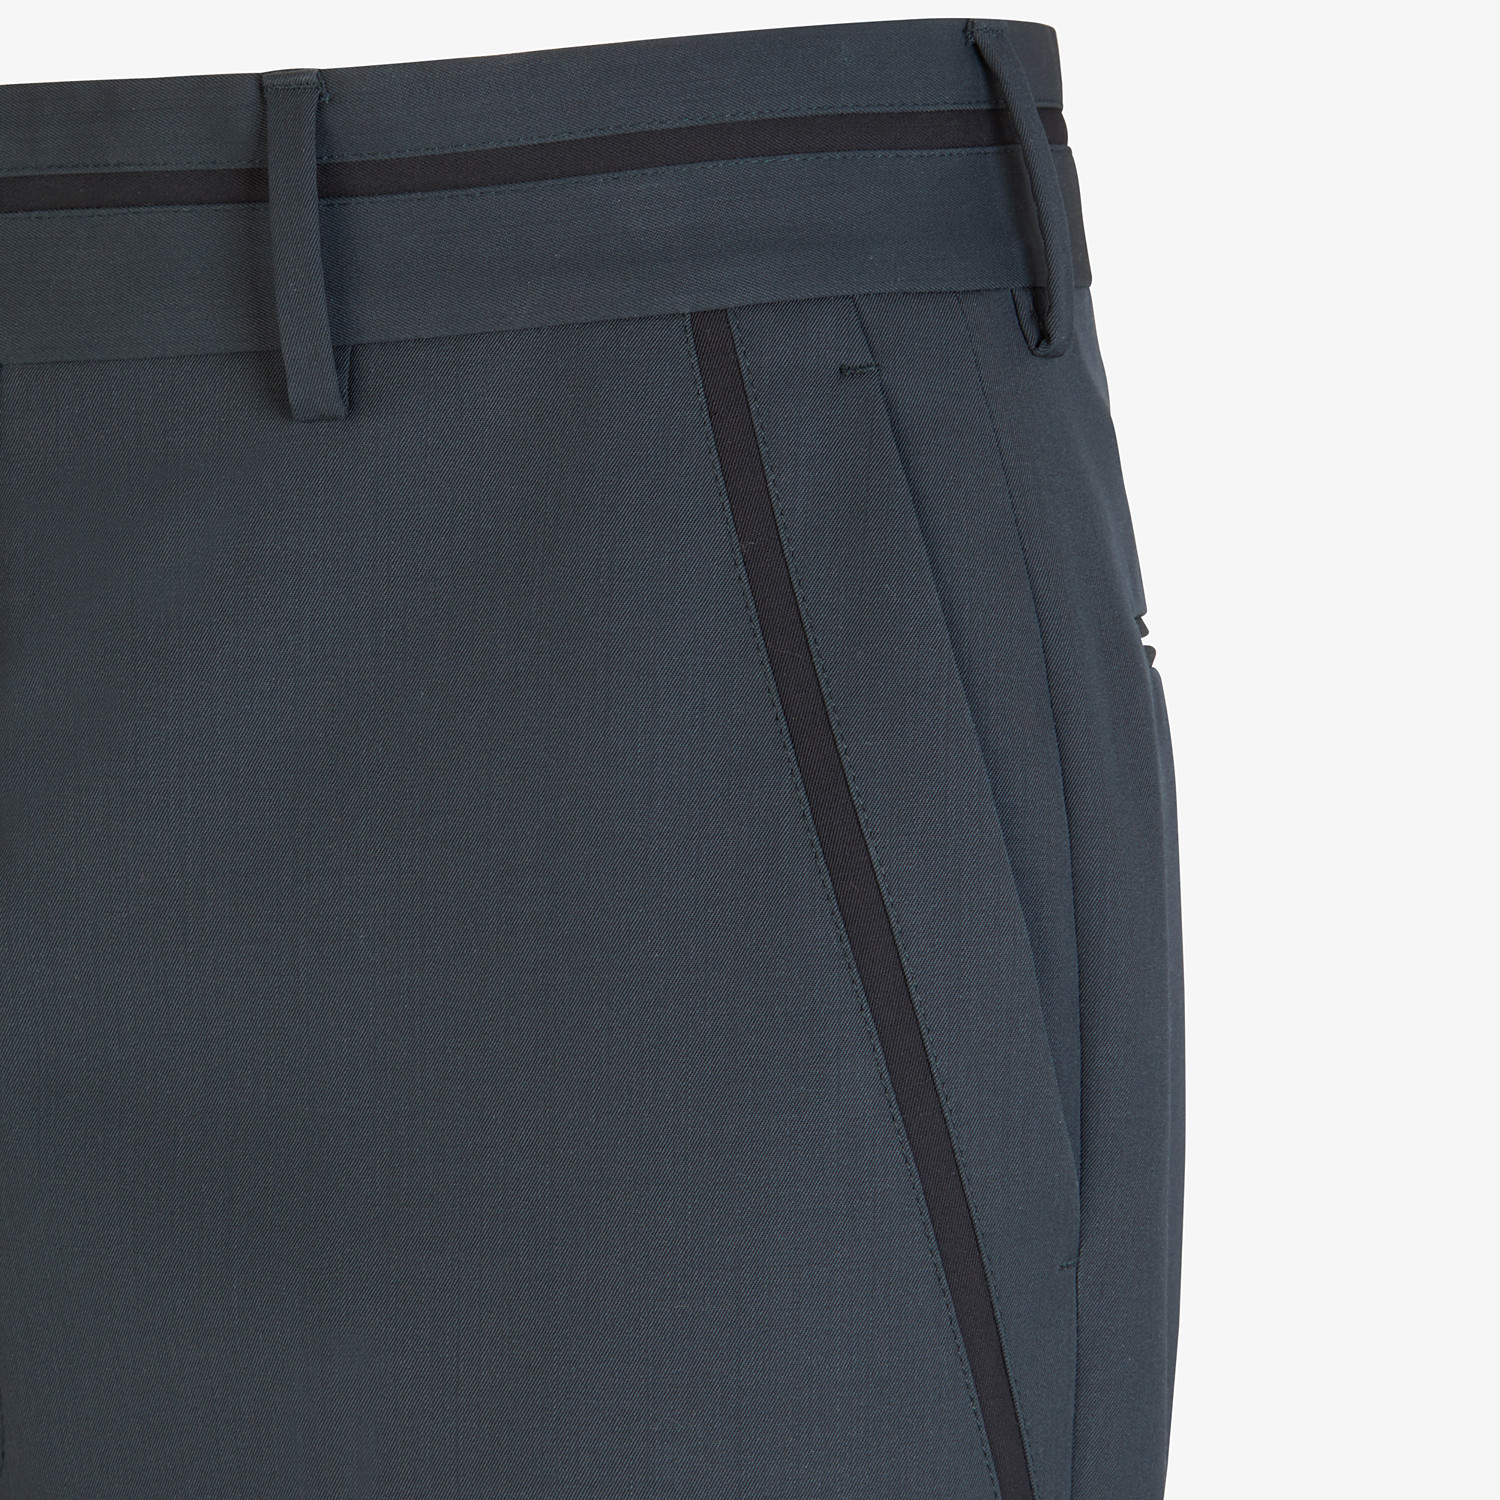 FENDI TROUSERS - Grey twill trousers - view 3 detail